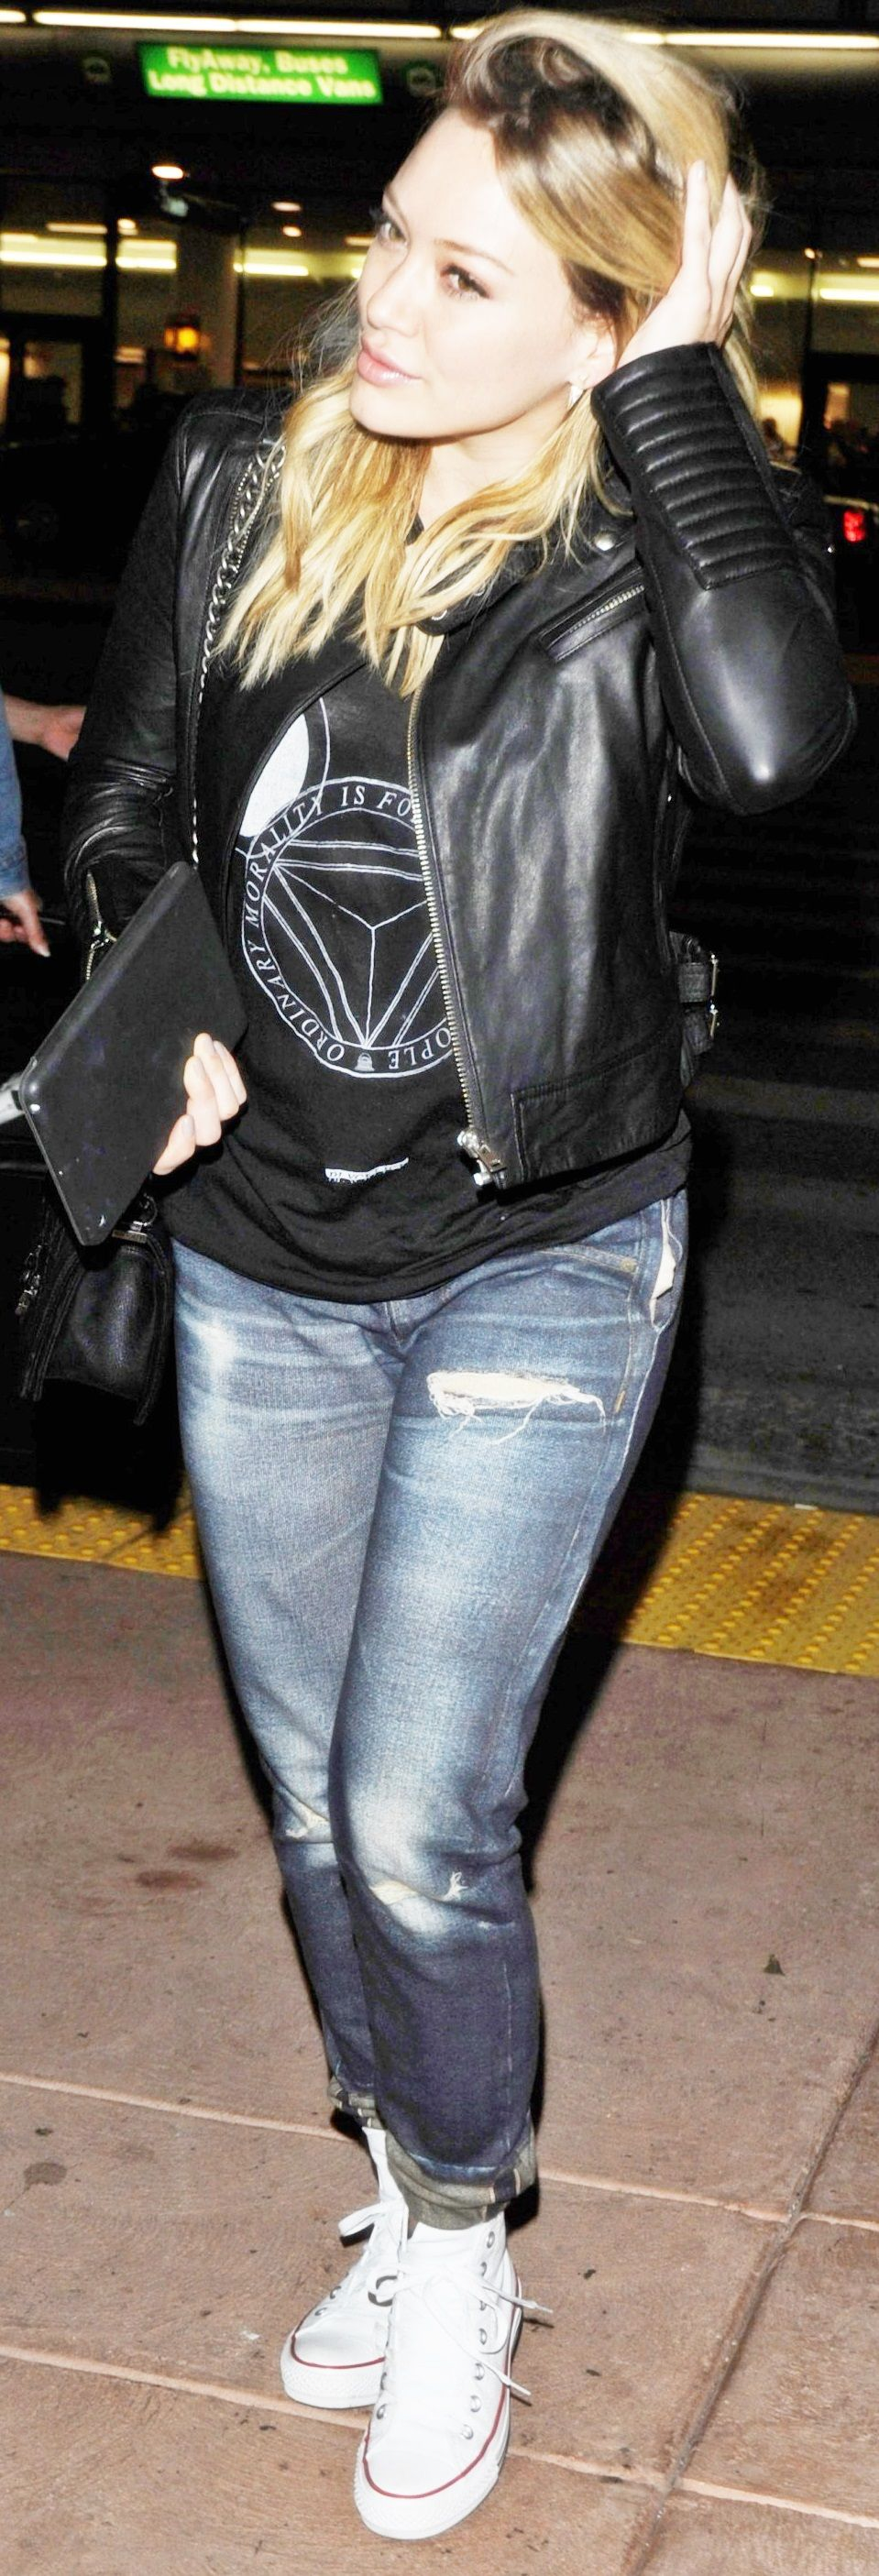 Hilary duff rocks the moto jacket for more style inspiration watch